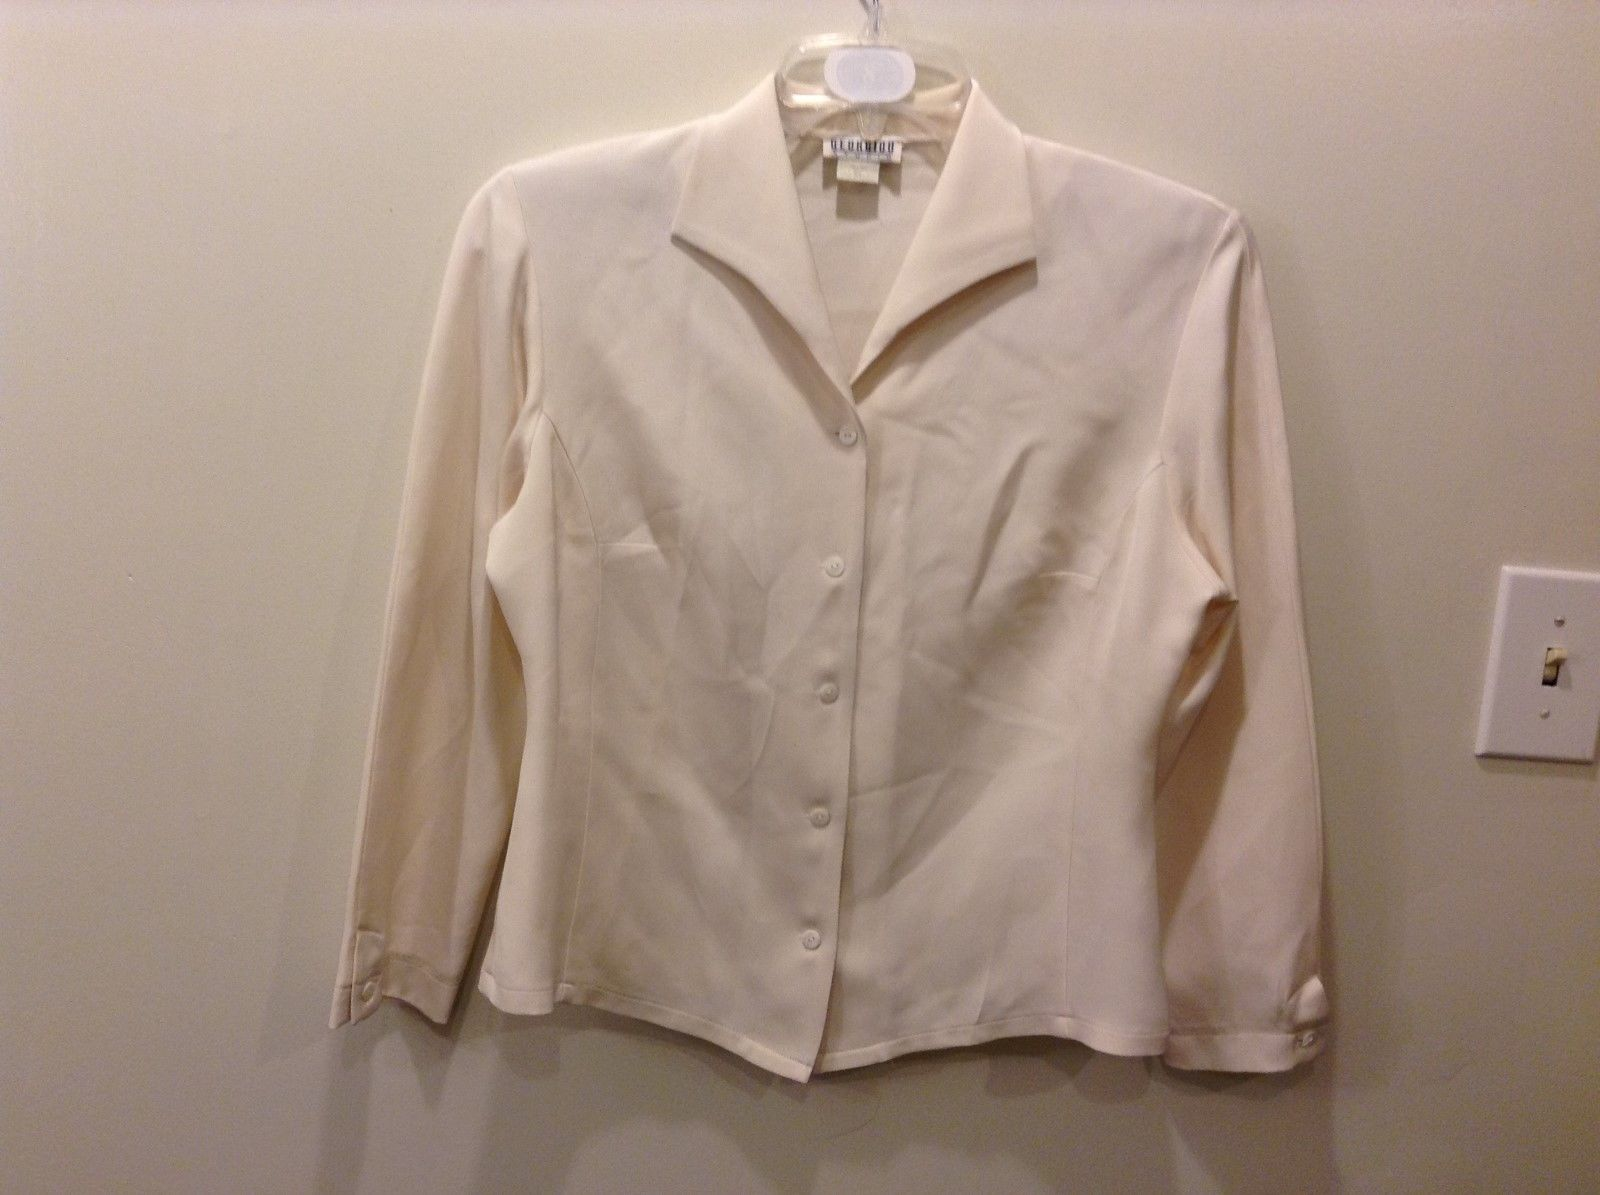 GEORGIOU STUDIO Off White Cream Button Down Blouse Size 10 100% Silk